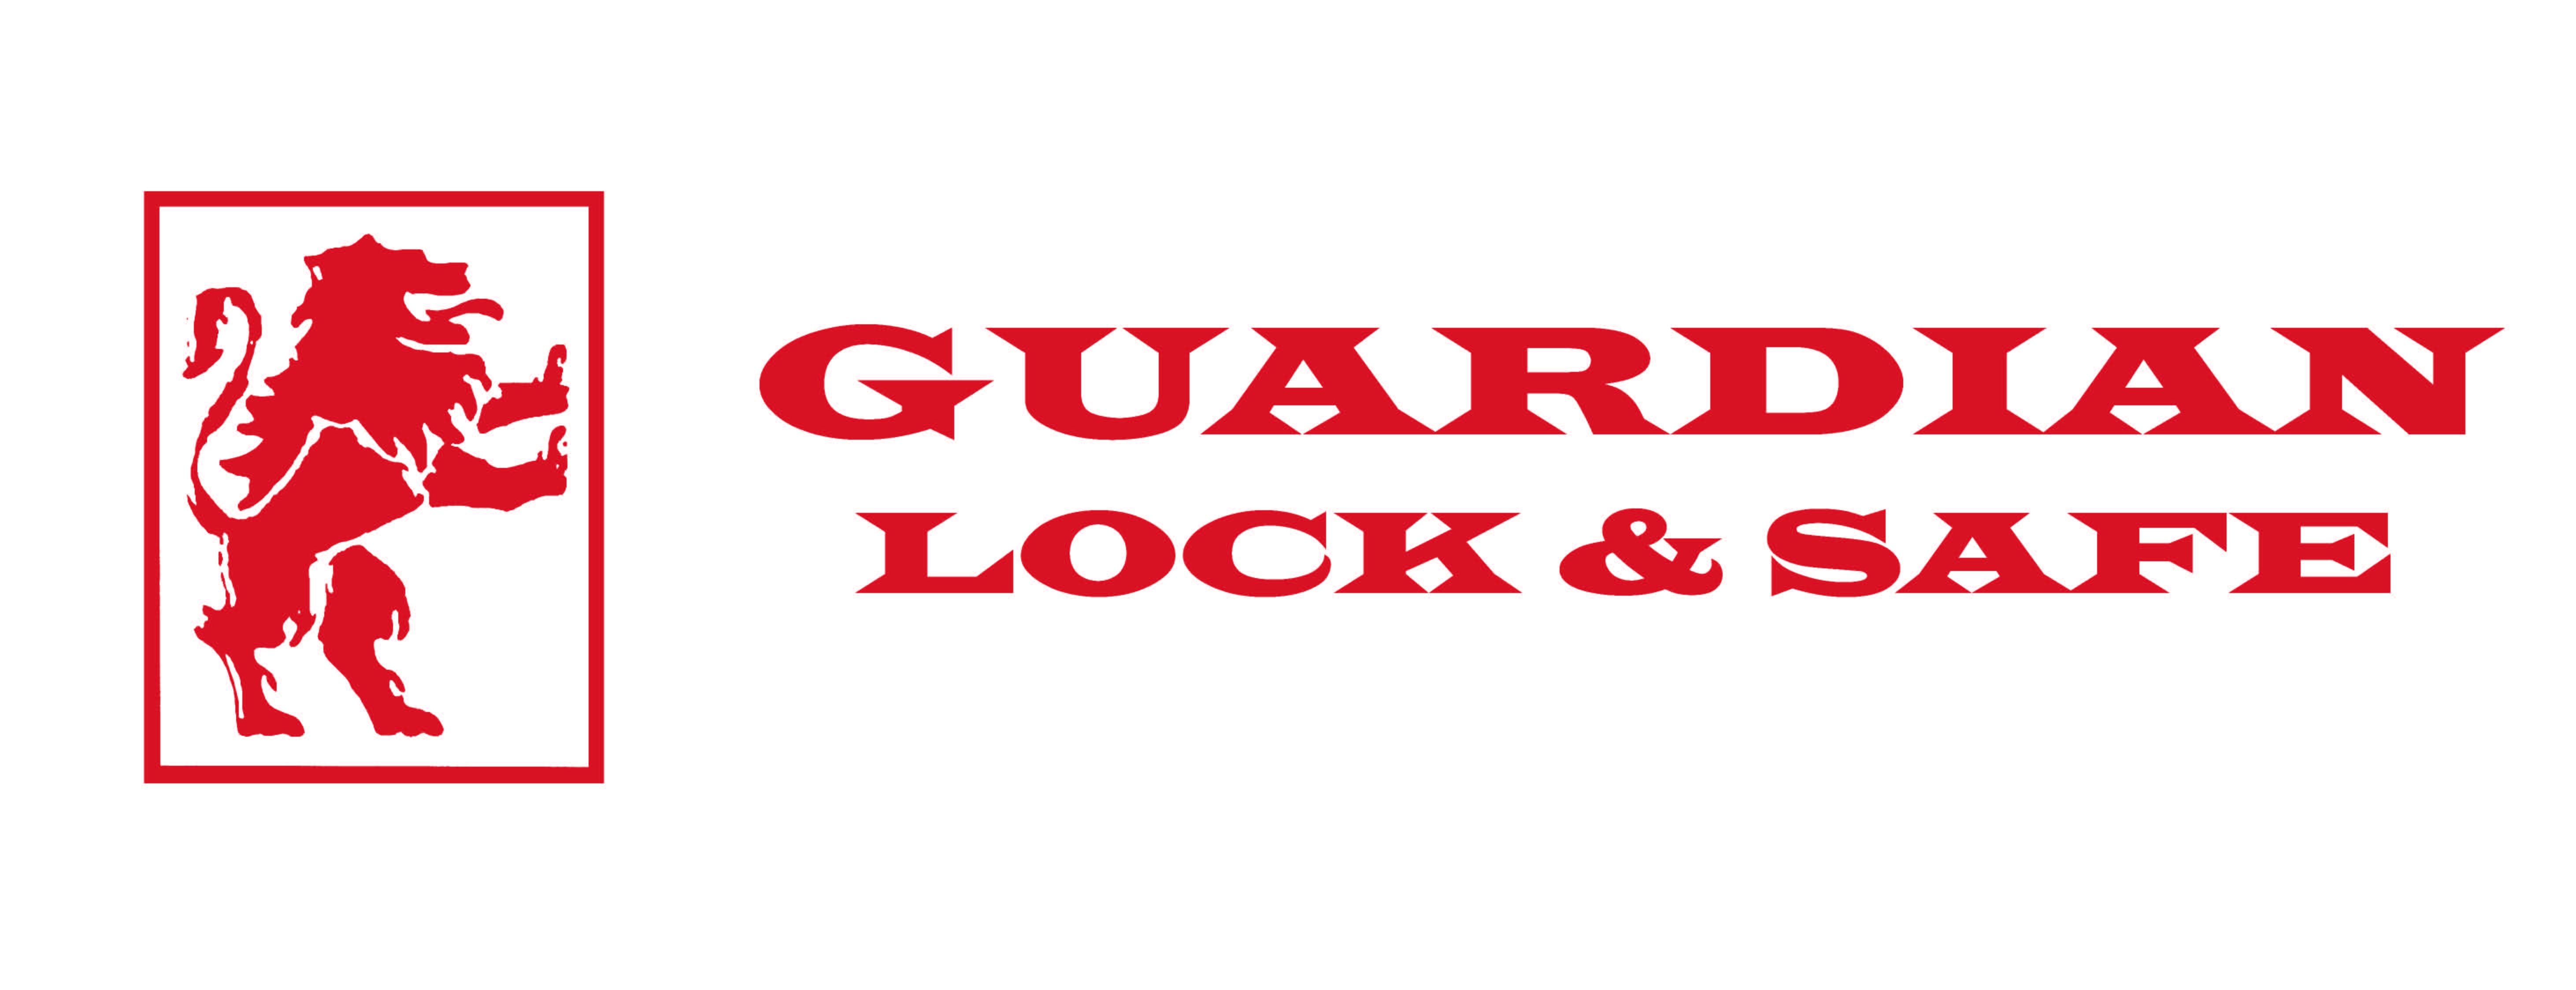 24-hr Locksmith in Perth - Lock Outs, Restricted Master Key Systems, & More | Guardian Lock & Safe